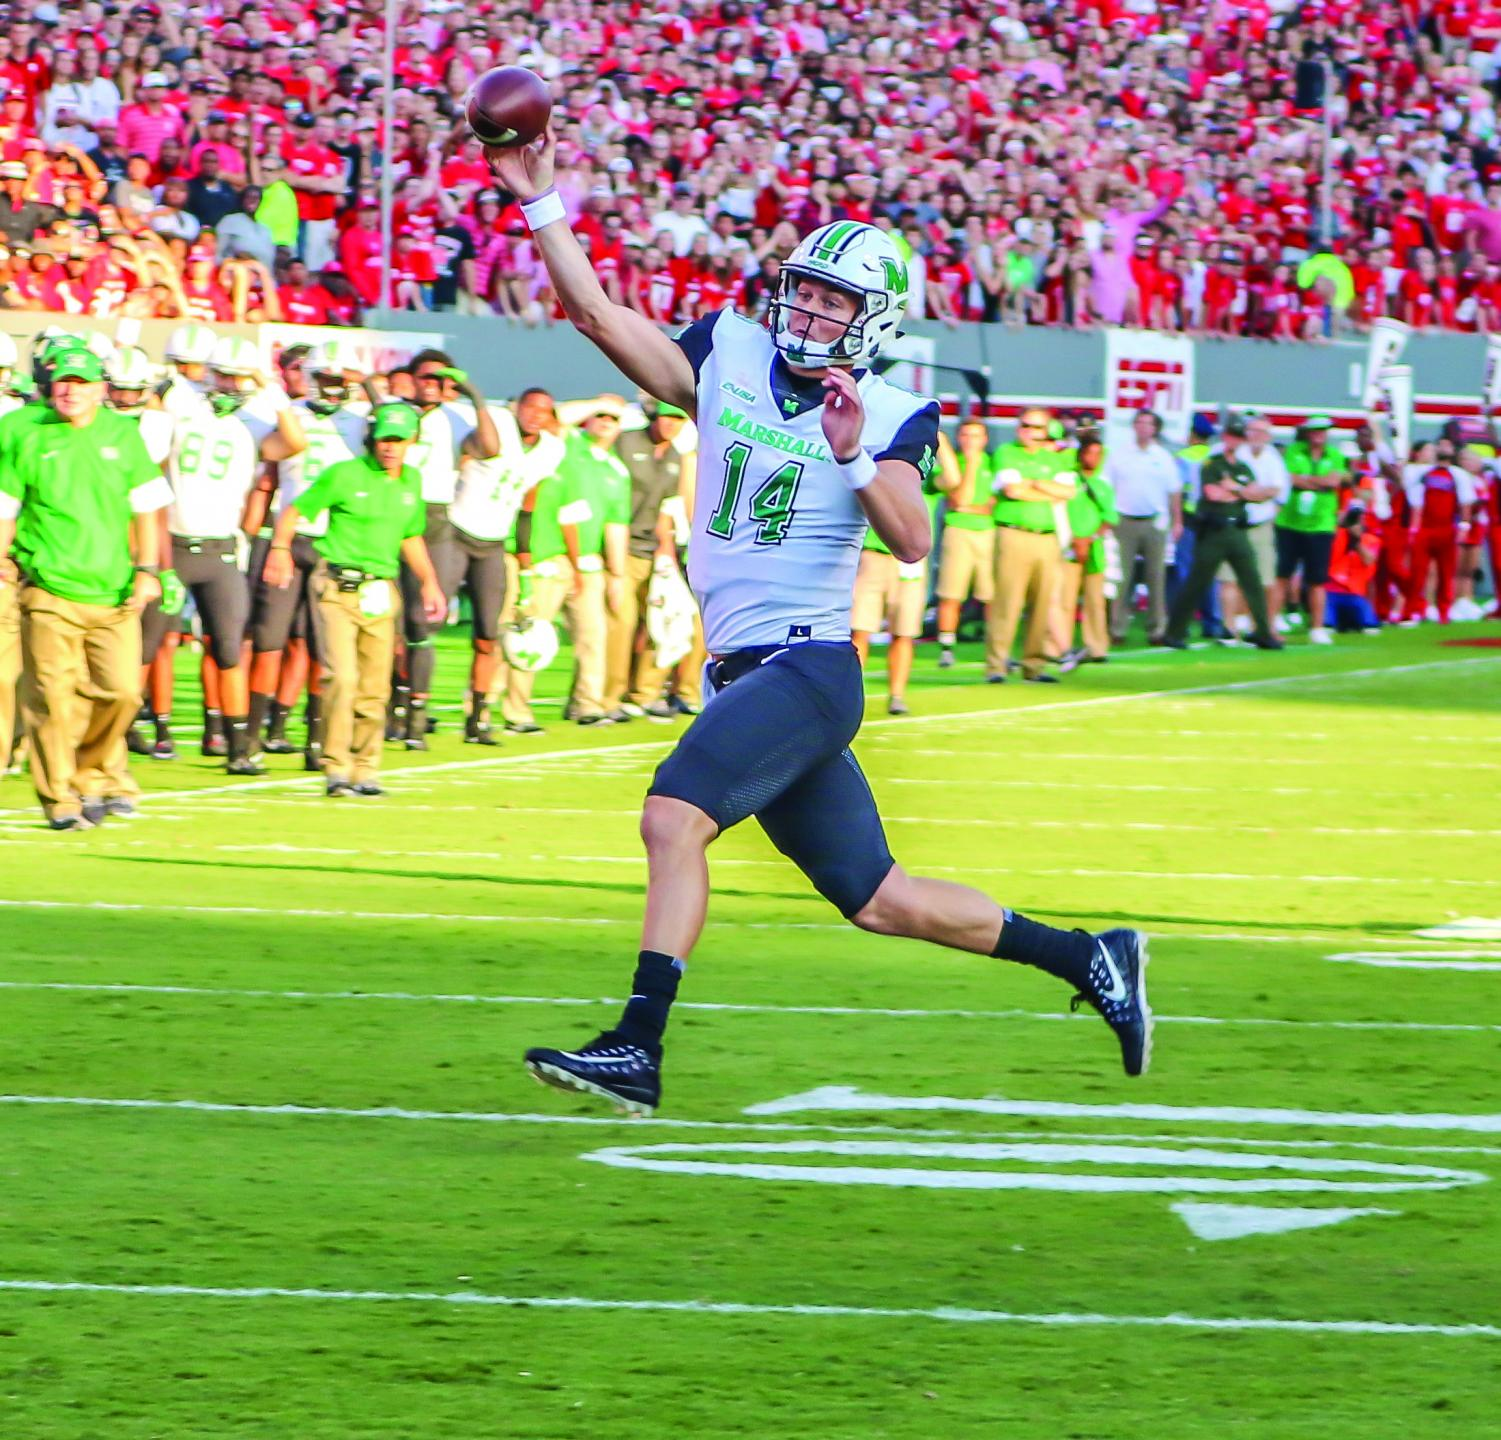 Chase Litton rolls out to pass in Marshall's 2017 contest at N.C. State. He threw for 350 yards and two touchdowns in a 37-20 loss to the Wolfpack.